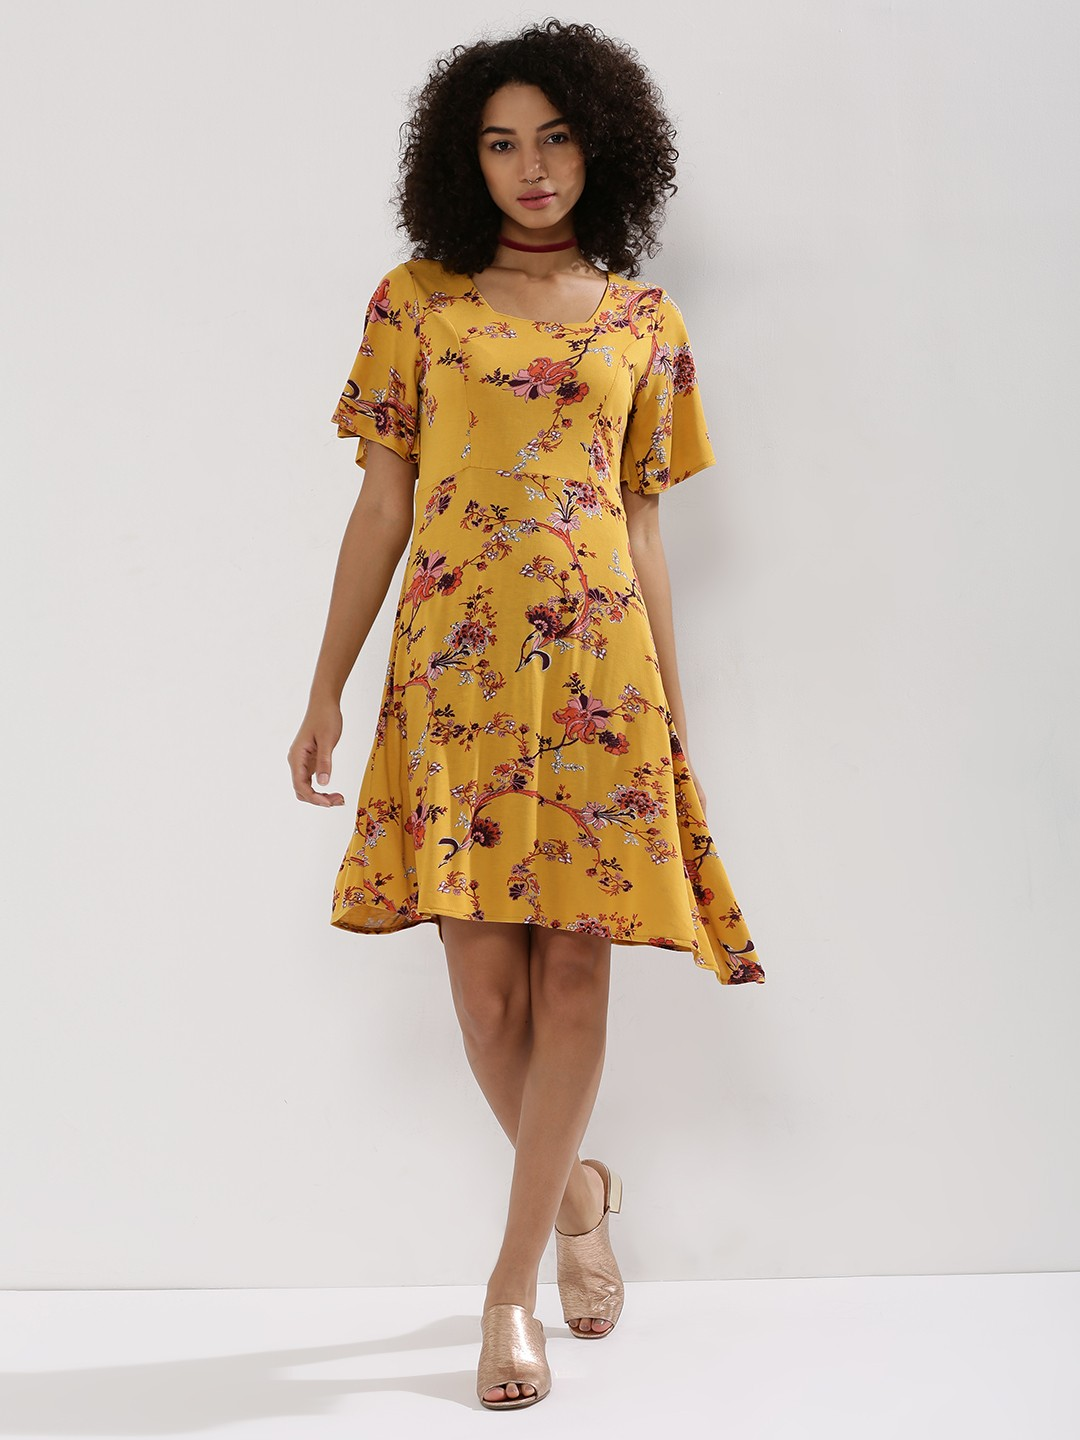 5 dresses for women